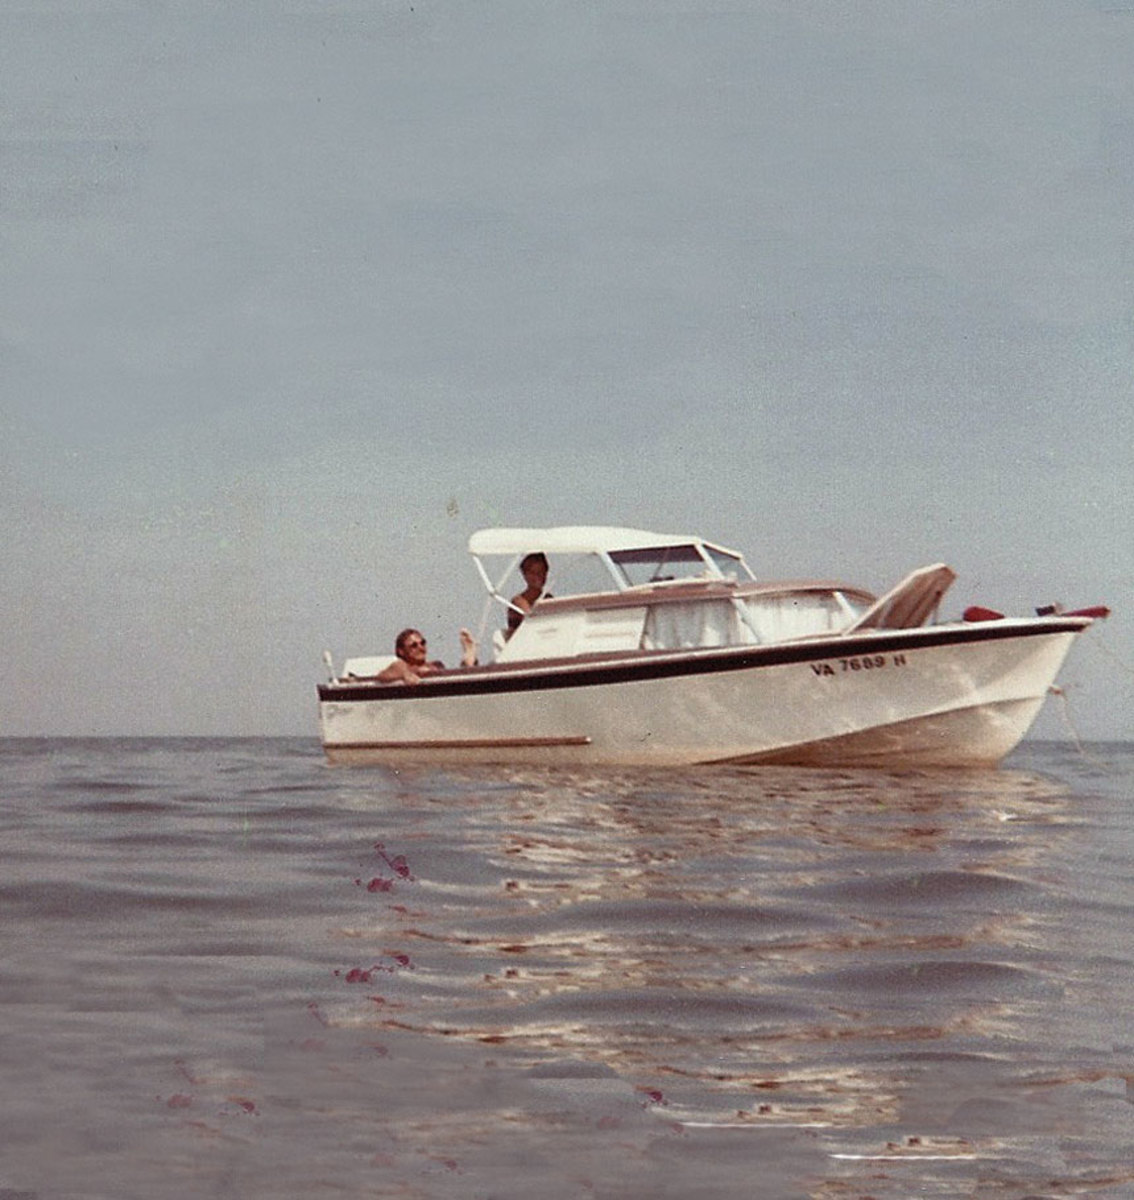 The Glasspar Seafair Sedan was the first of many boats that Tom and Mel enjoyed together.